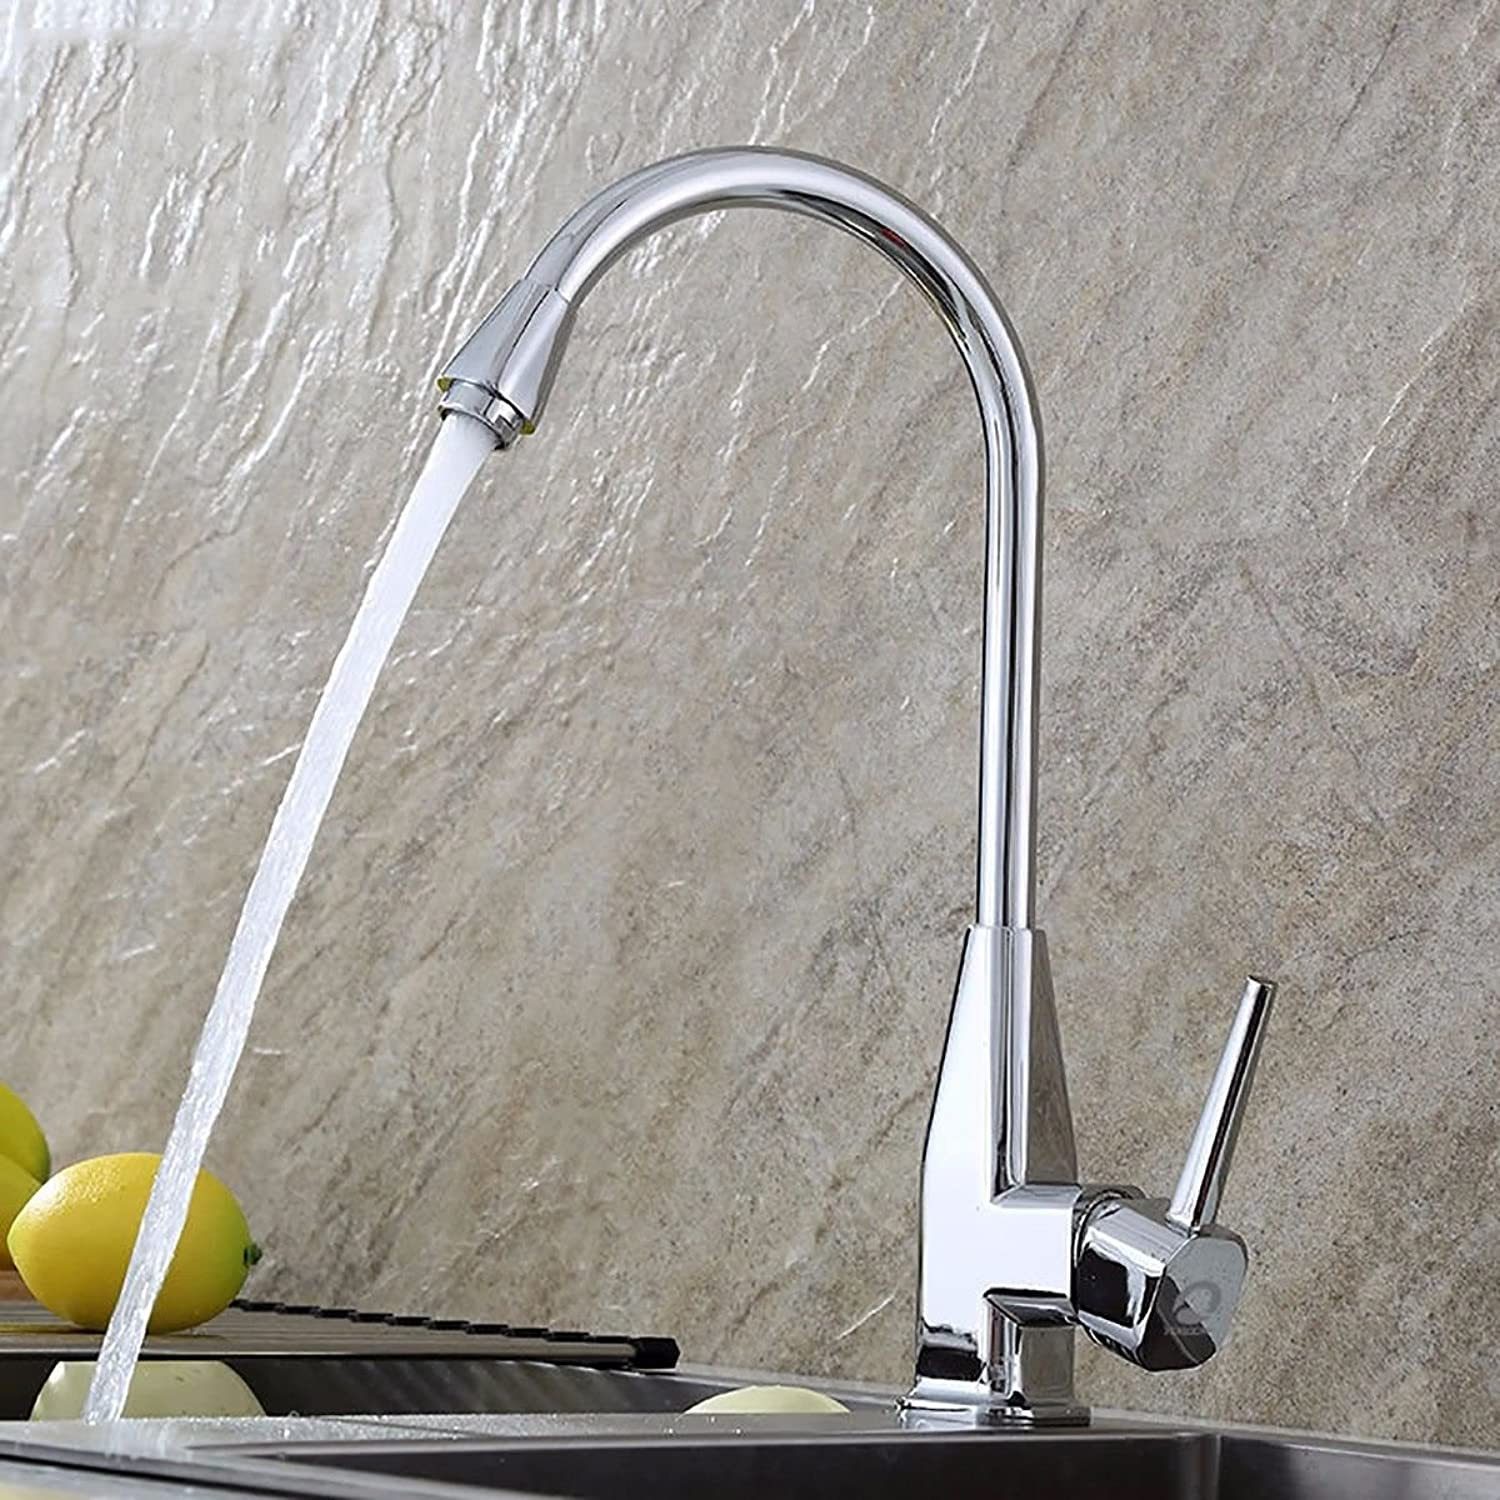 Modern simple copper hot and cold kitchen sink taps kitchen faucet Zinc alloy sink sink faucet Suitable for all bathroom kitchen sinks